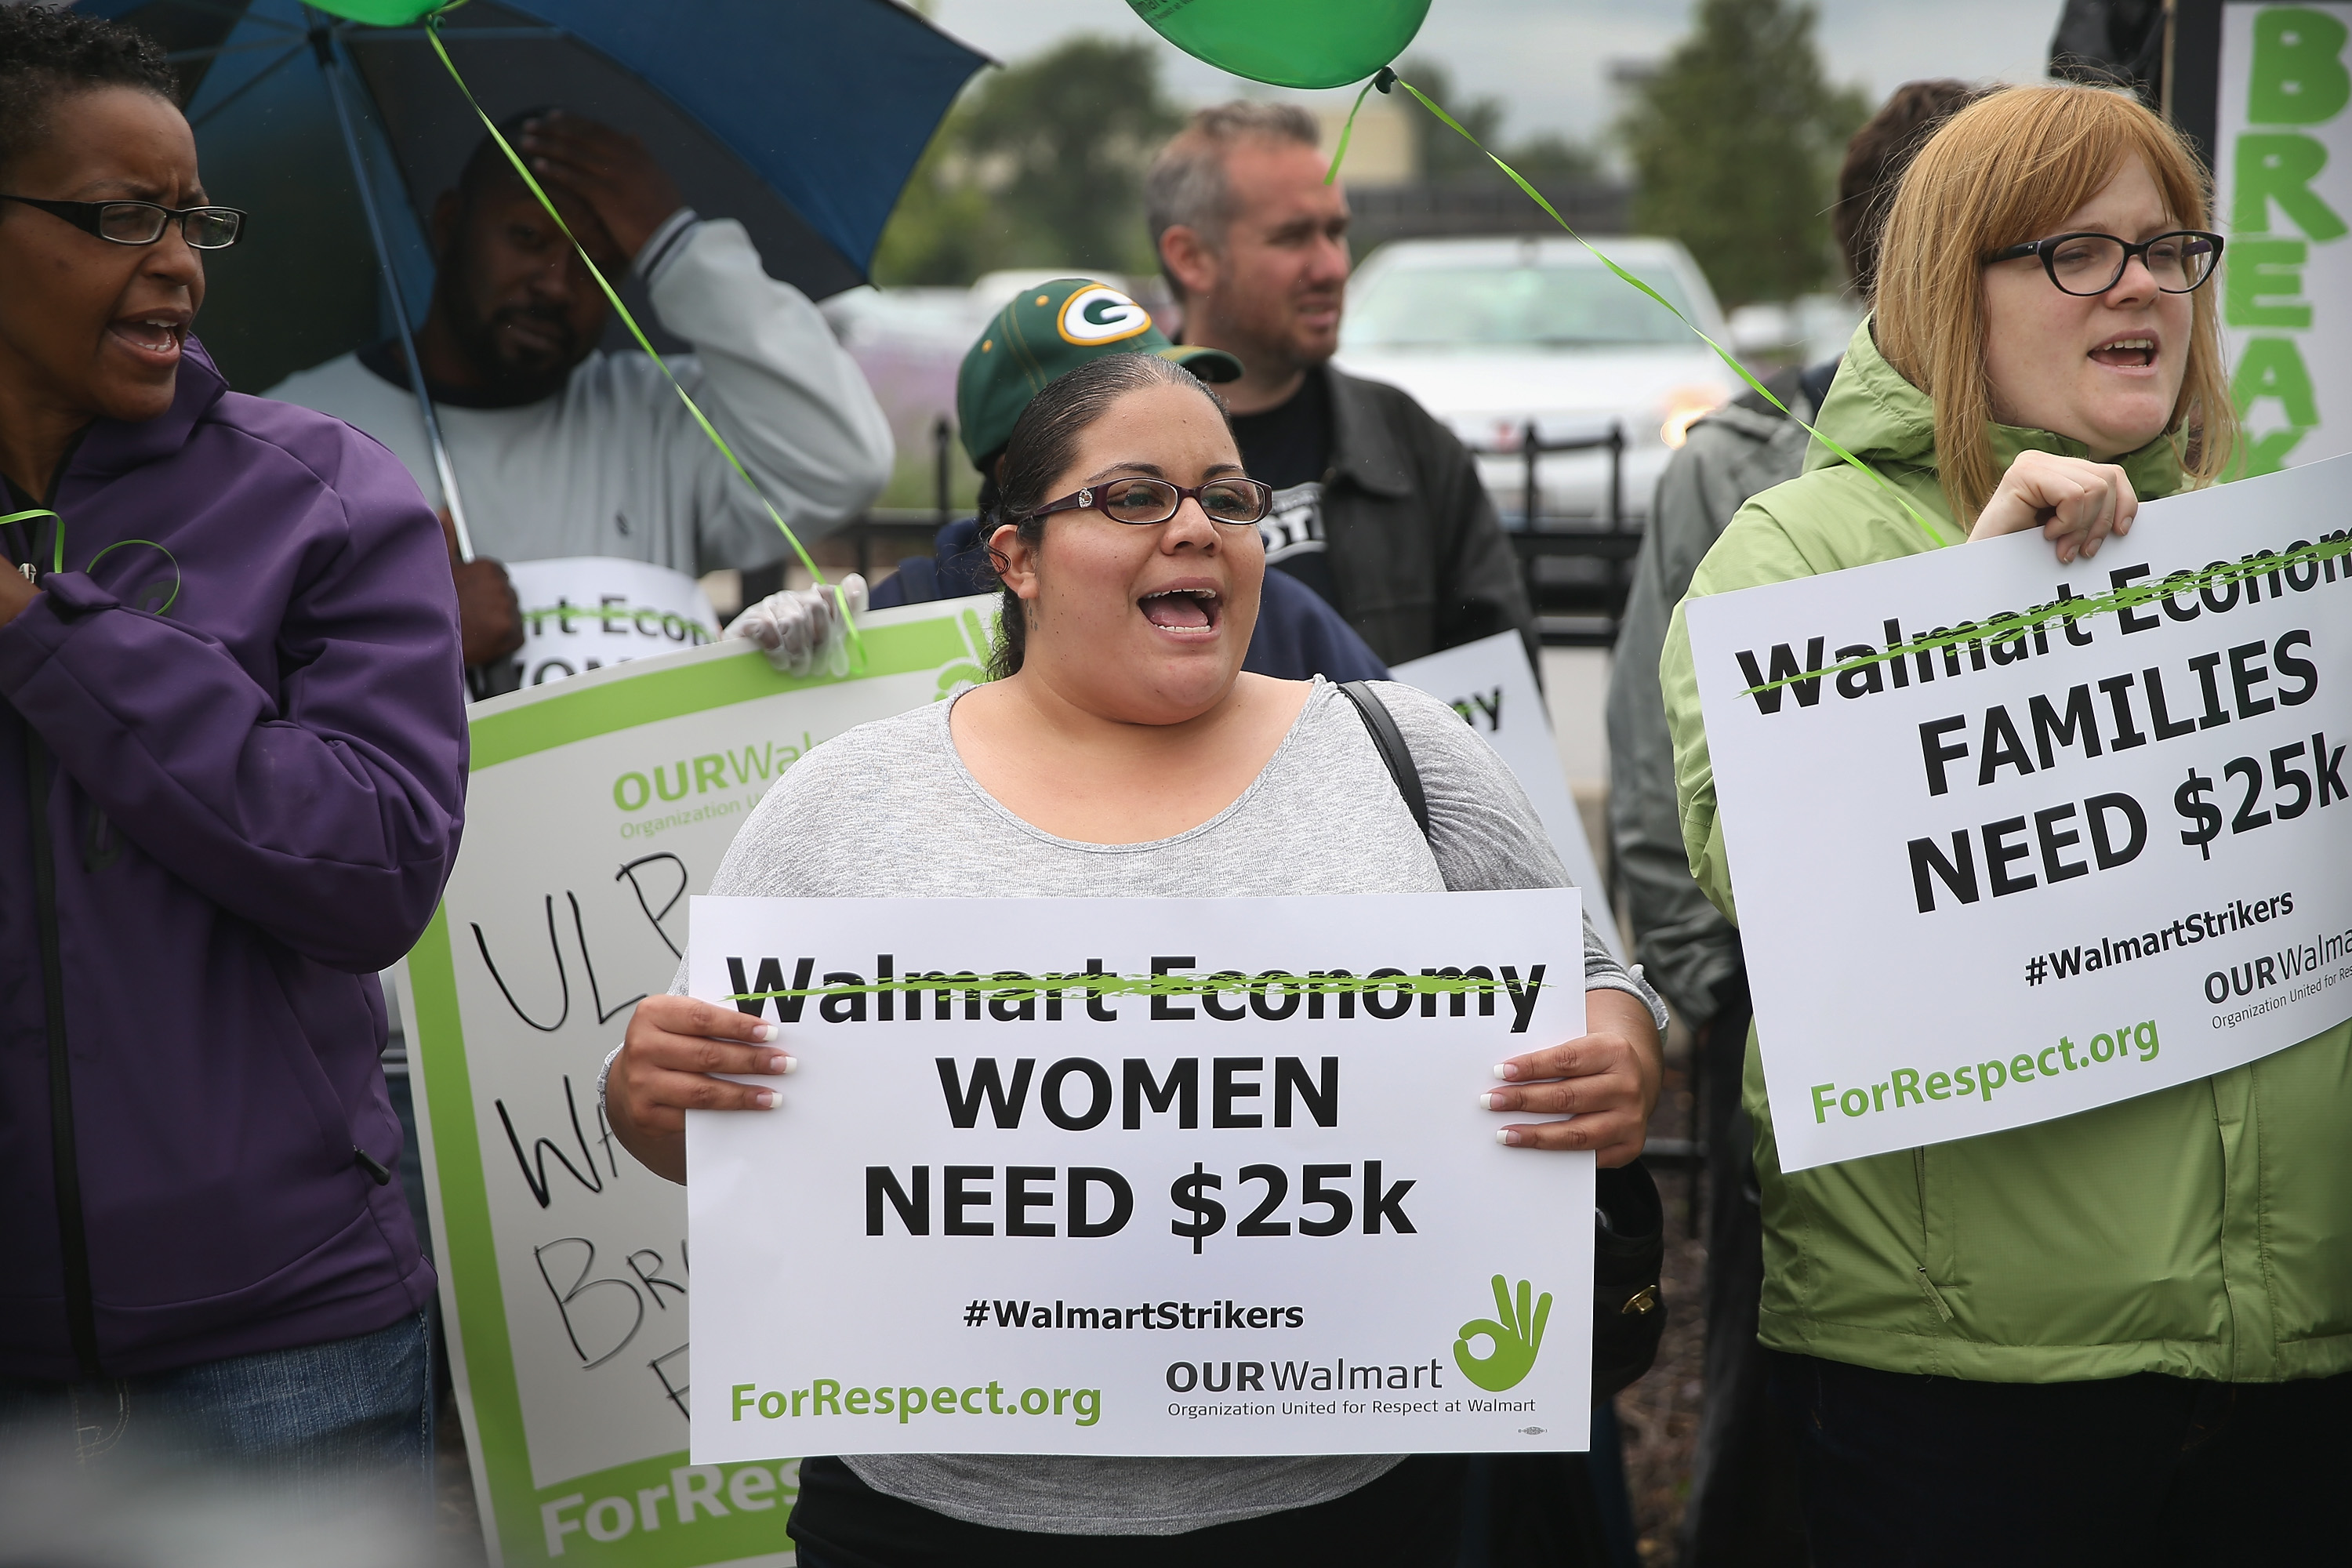 Walmart could pay workers $15/hr with the money it's giving